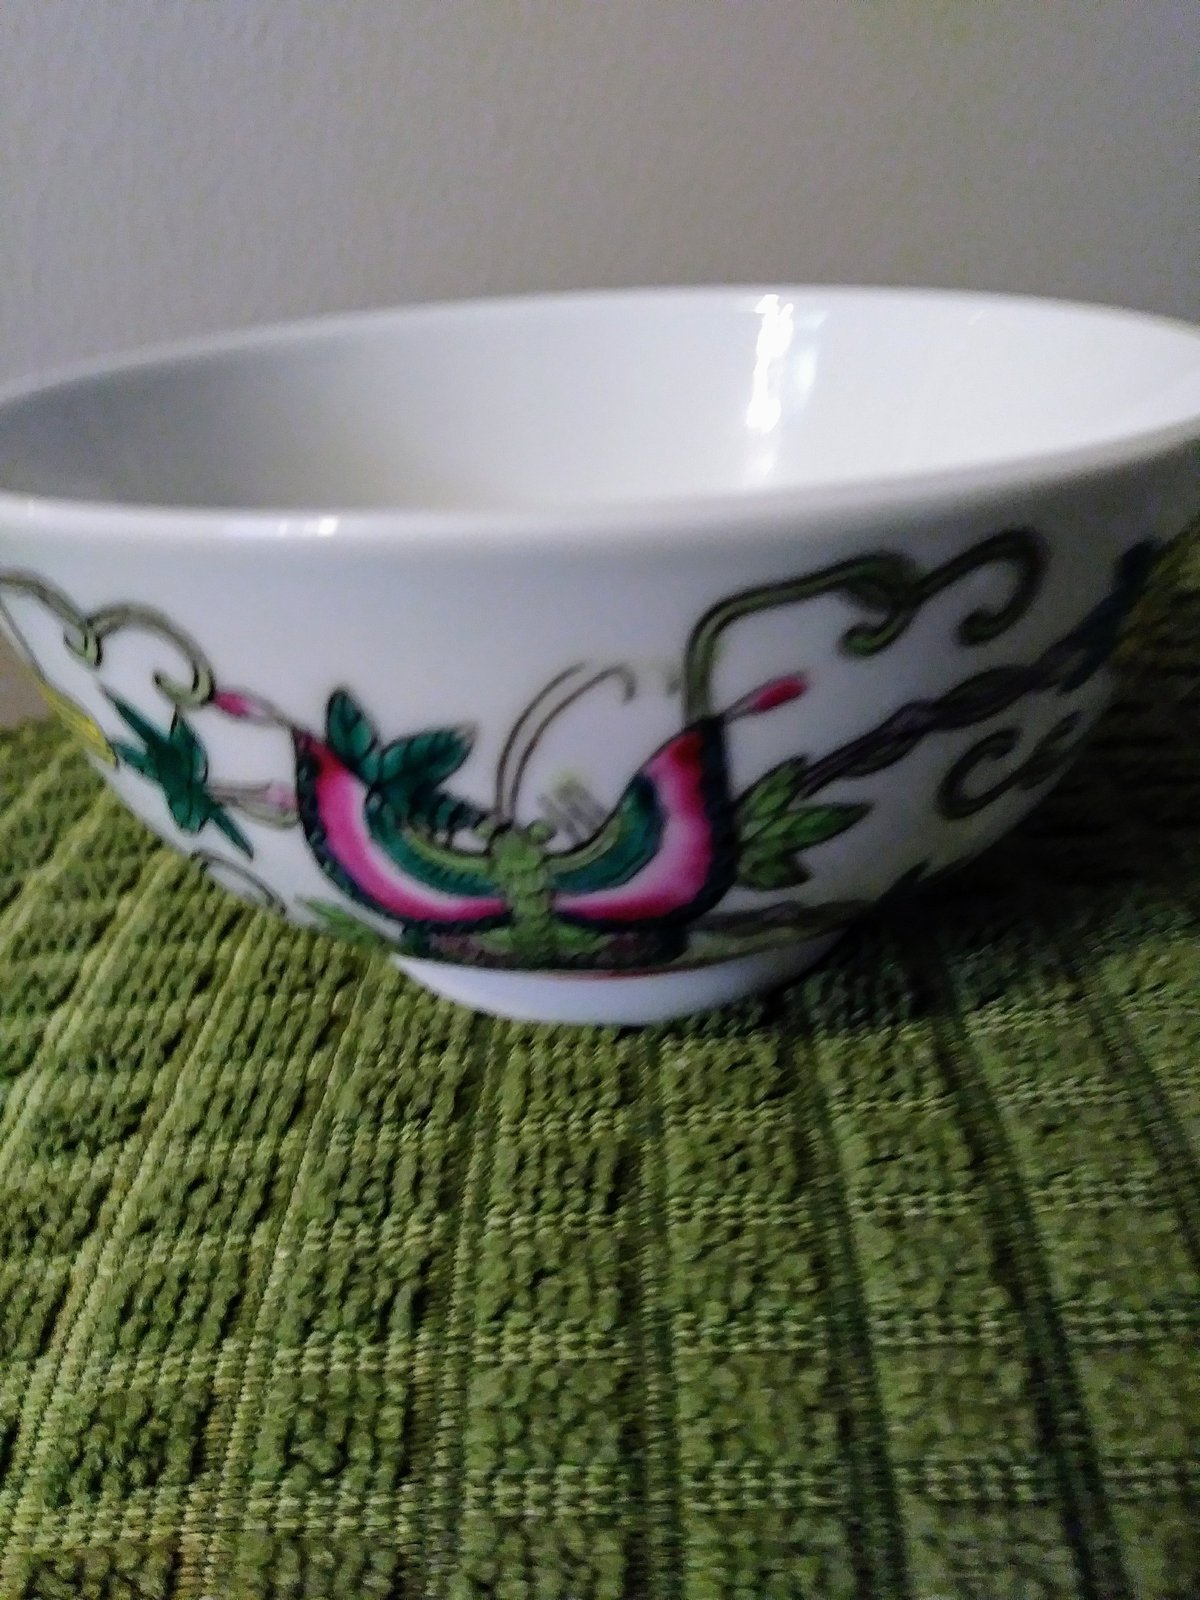 Vintage Chinese Porcelain Bowl, Hand Painted Butterflies, Flowers Gourds Asian B